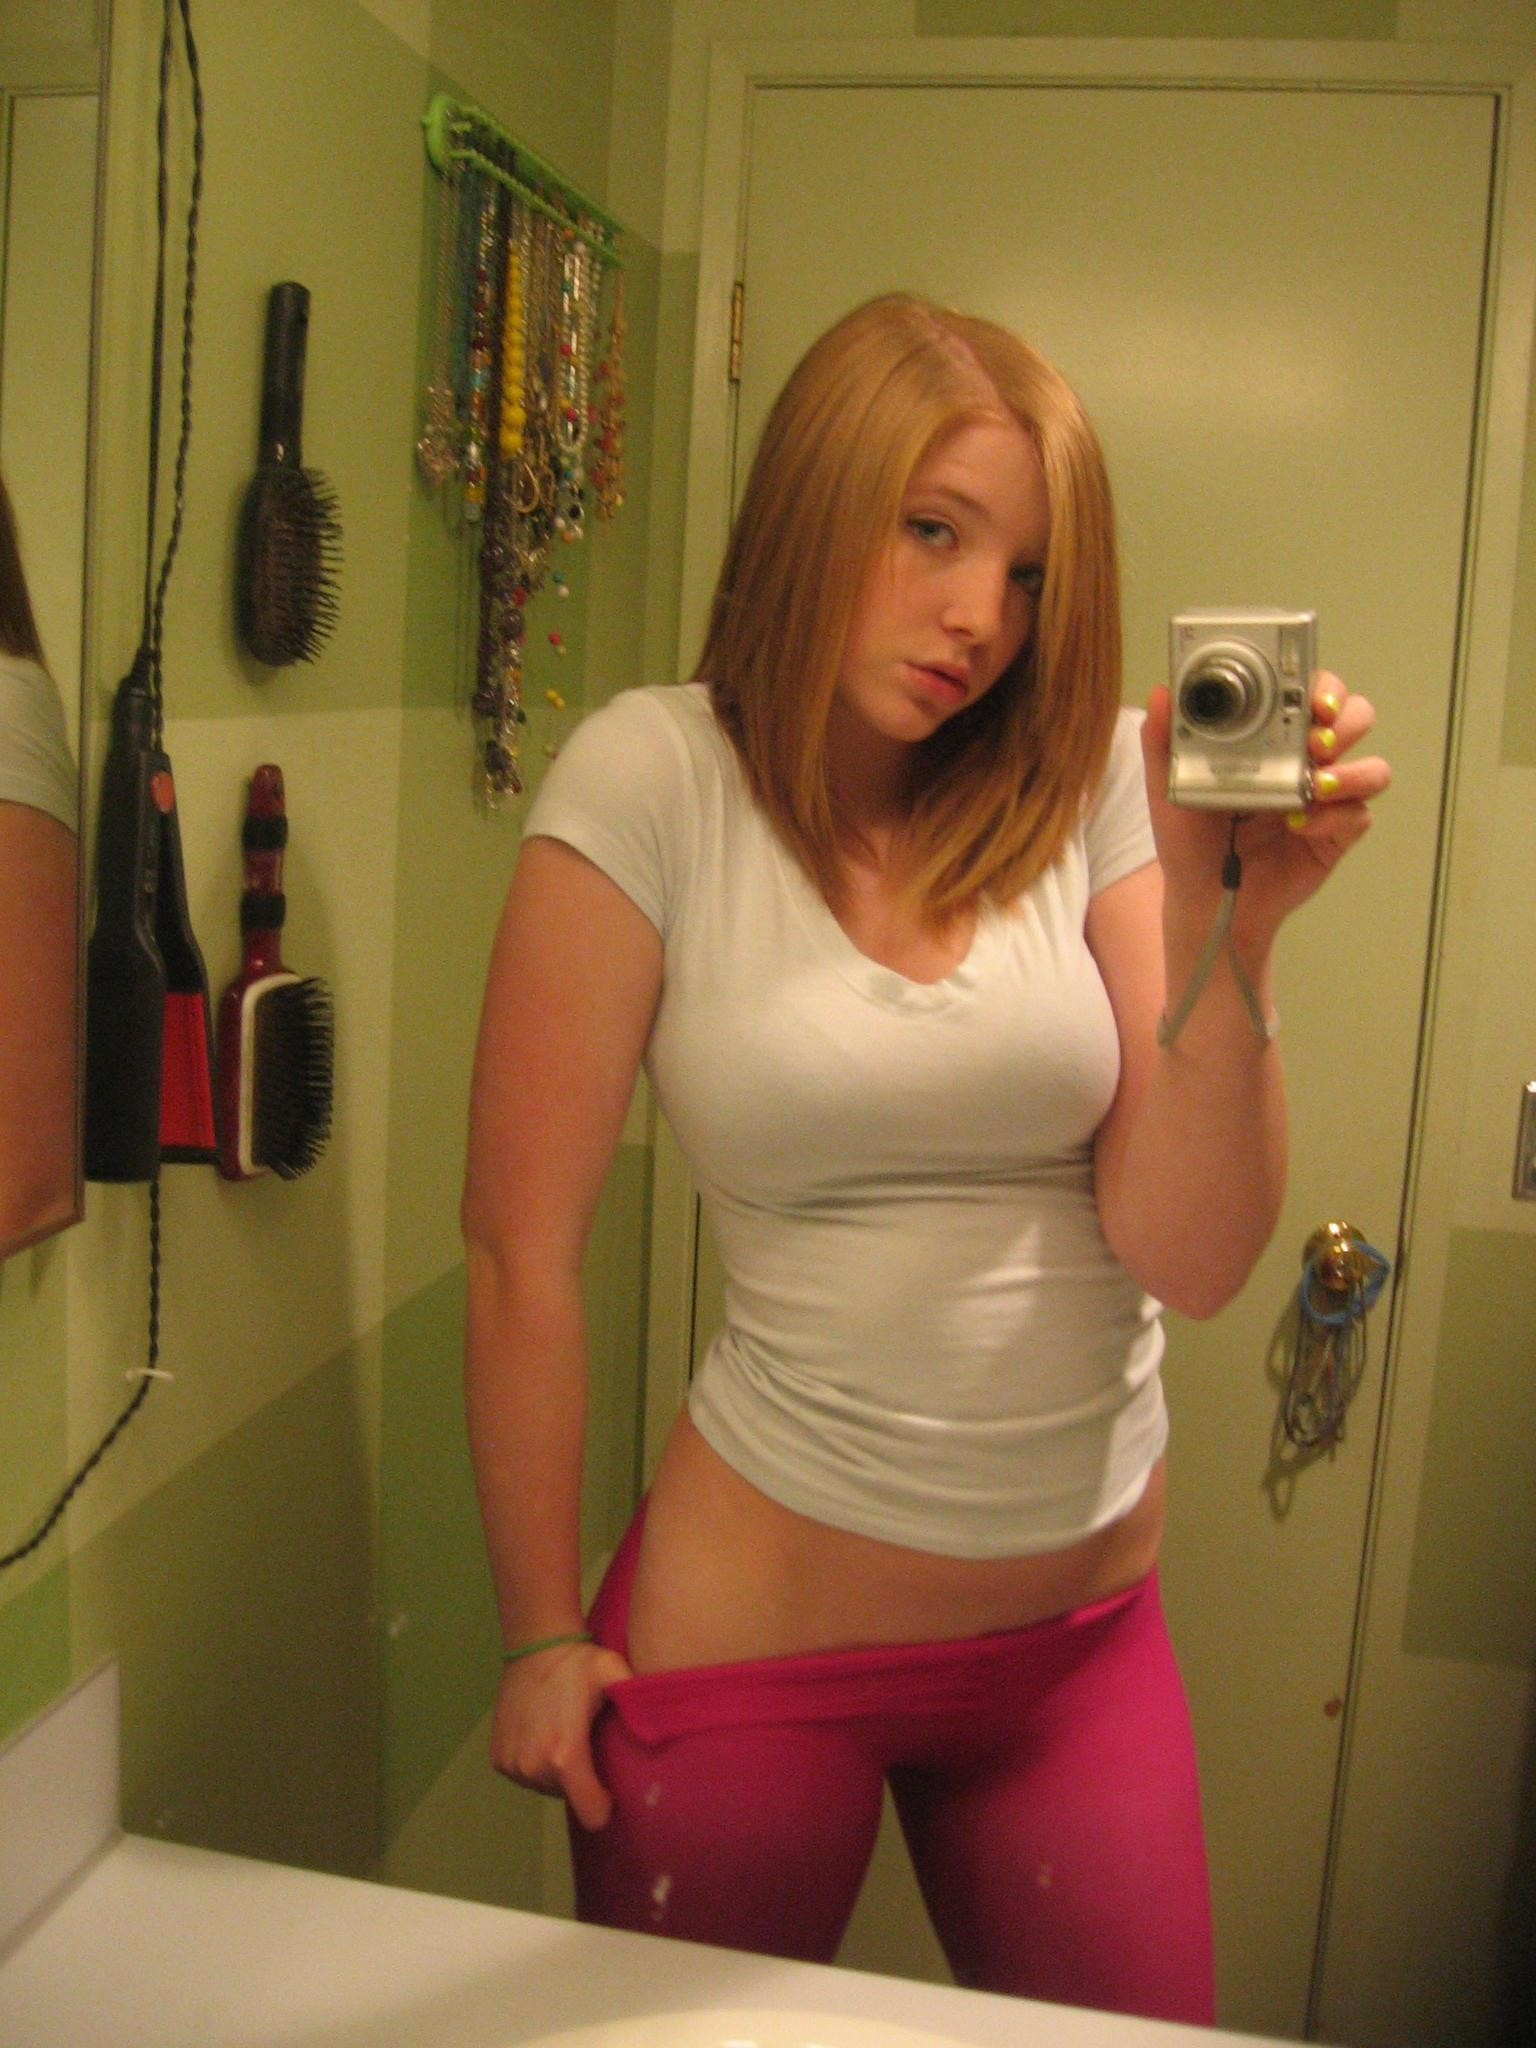 Self Shot Honey - Picture  Ebaums World-5679